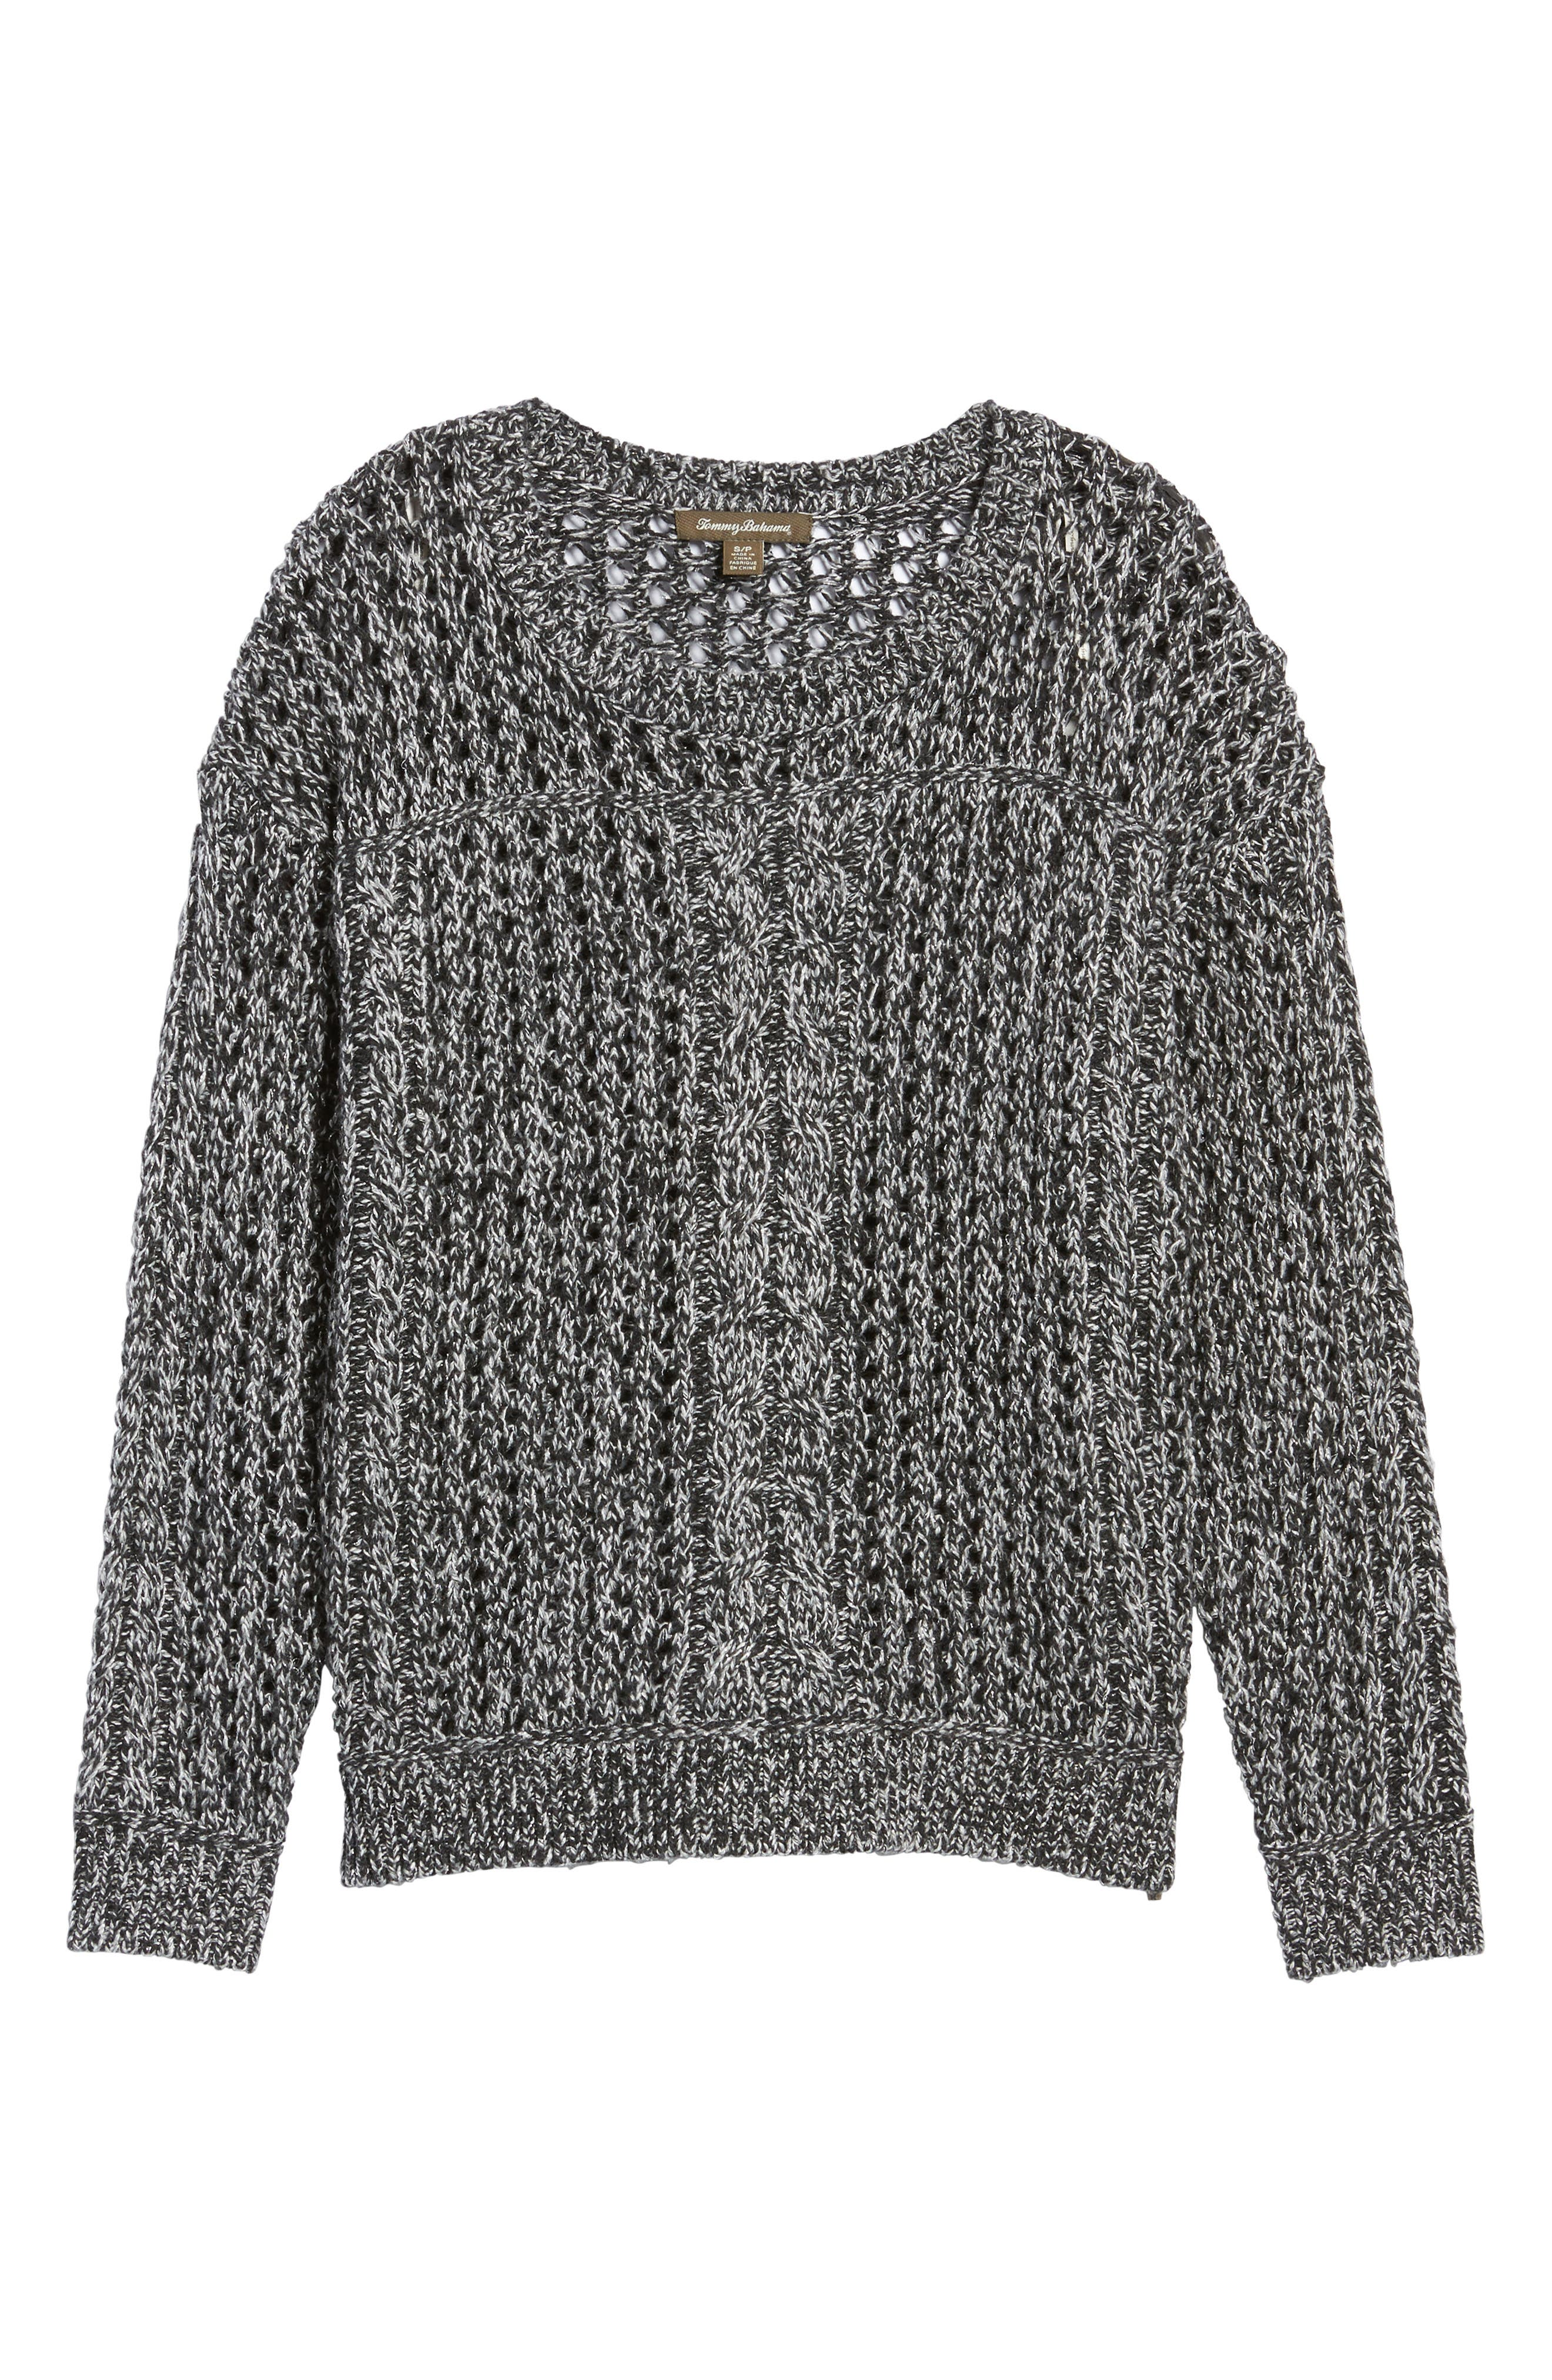 Cascade Cable Sparkle Crew Sweater,                             Alternate thumbnail 6, color,